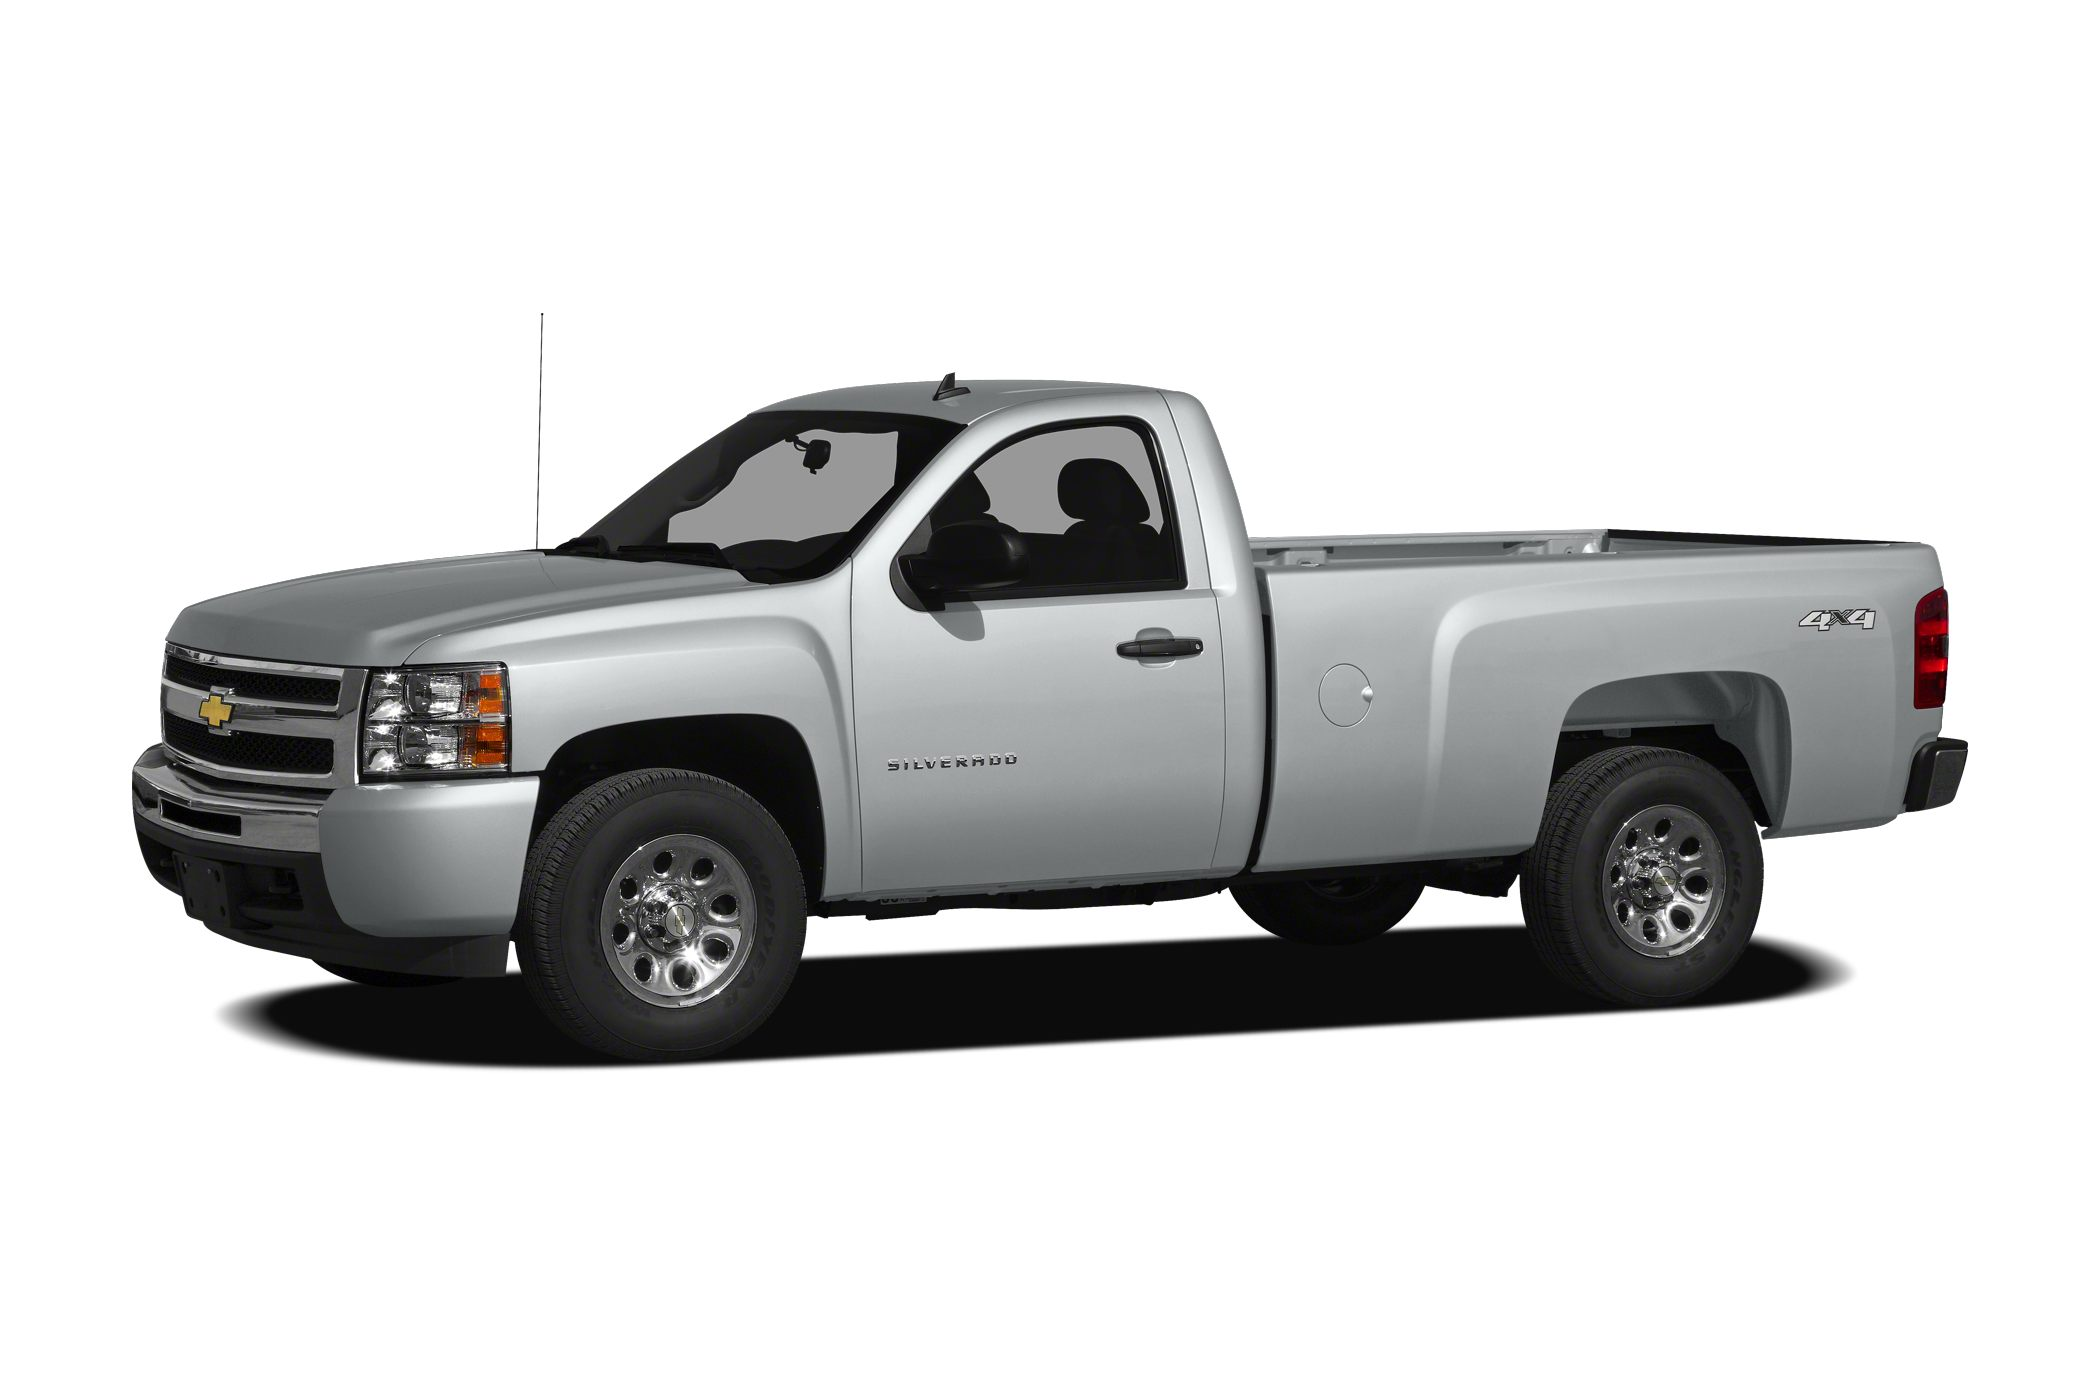 2011 Chevrolet Silverado 1500 LT Extended Cab Pickup for sale in Toledo for $24,921 with 23,919 miles.